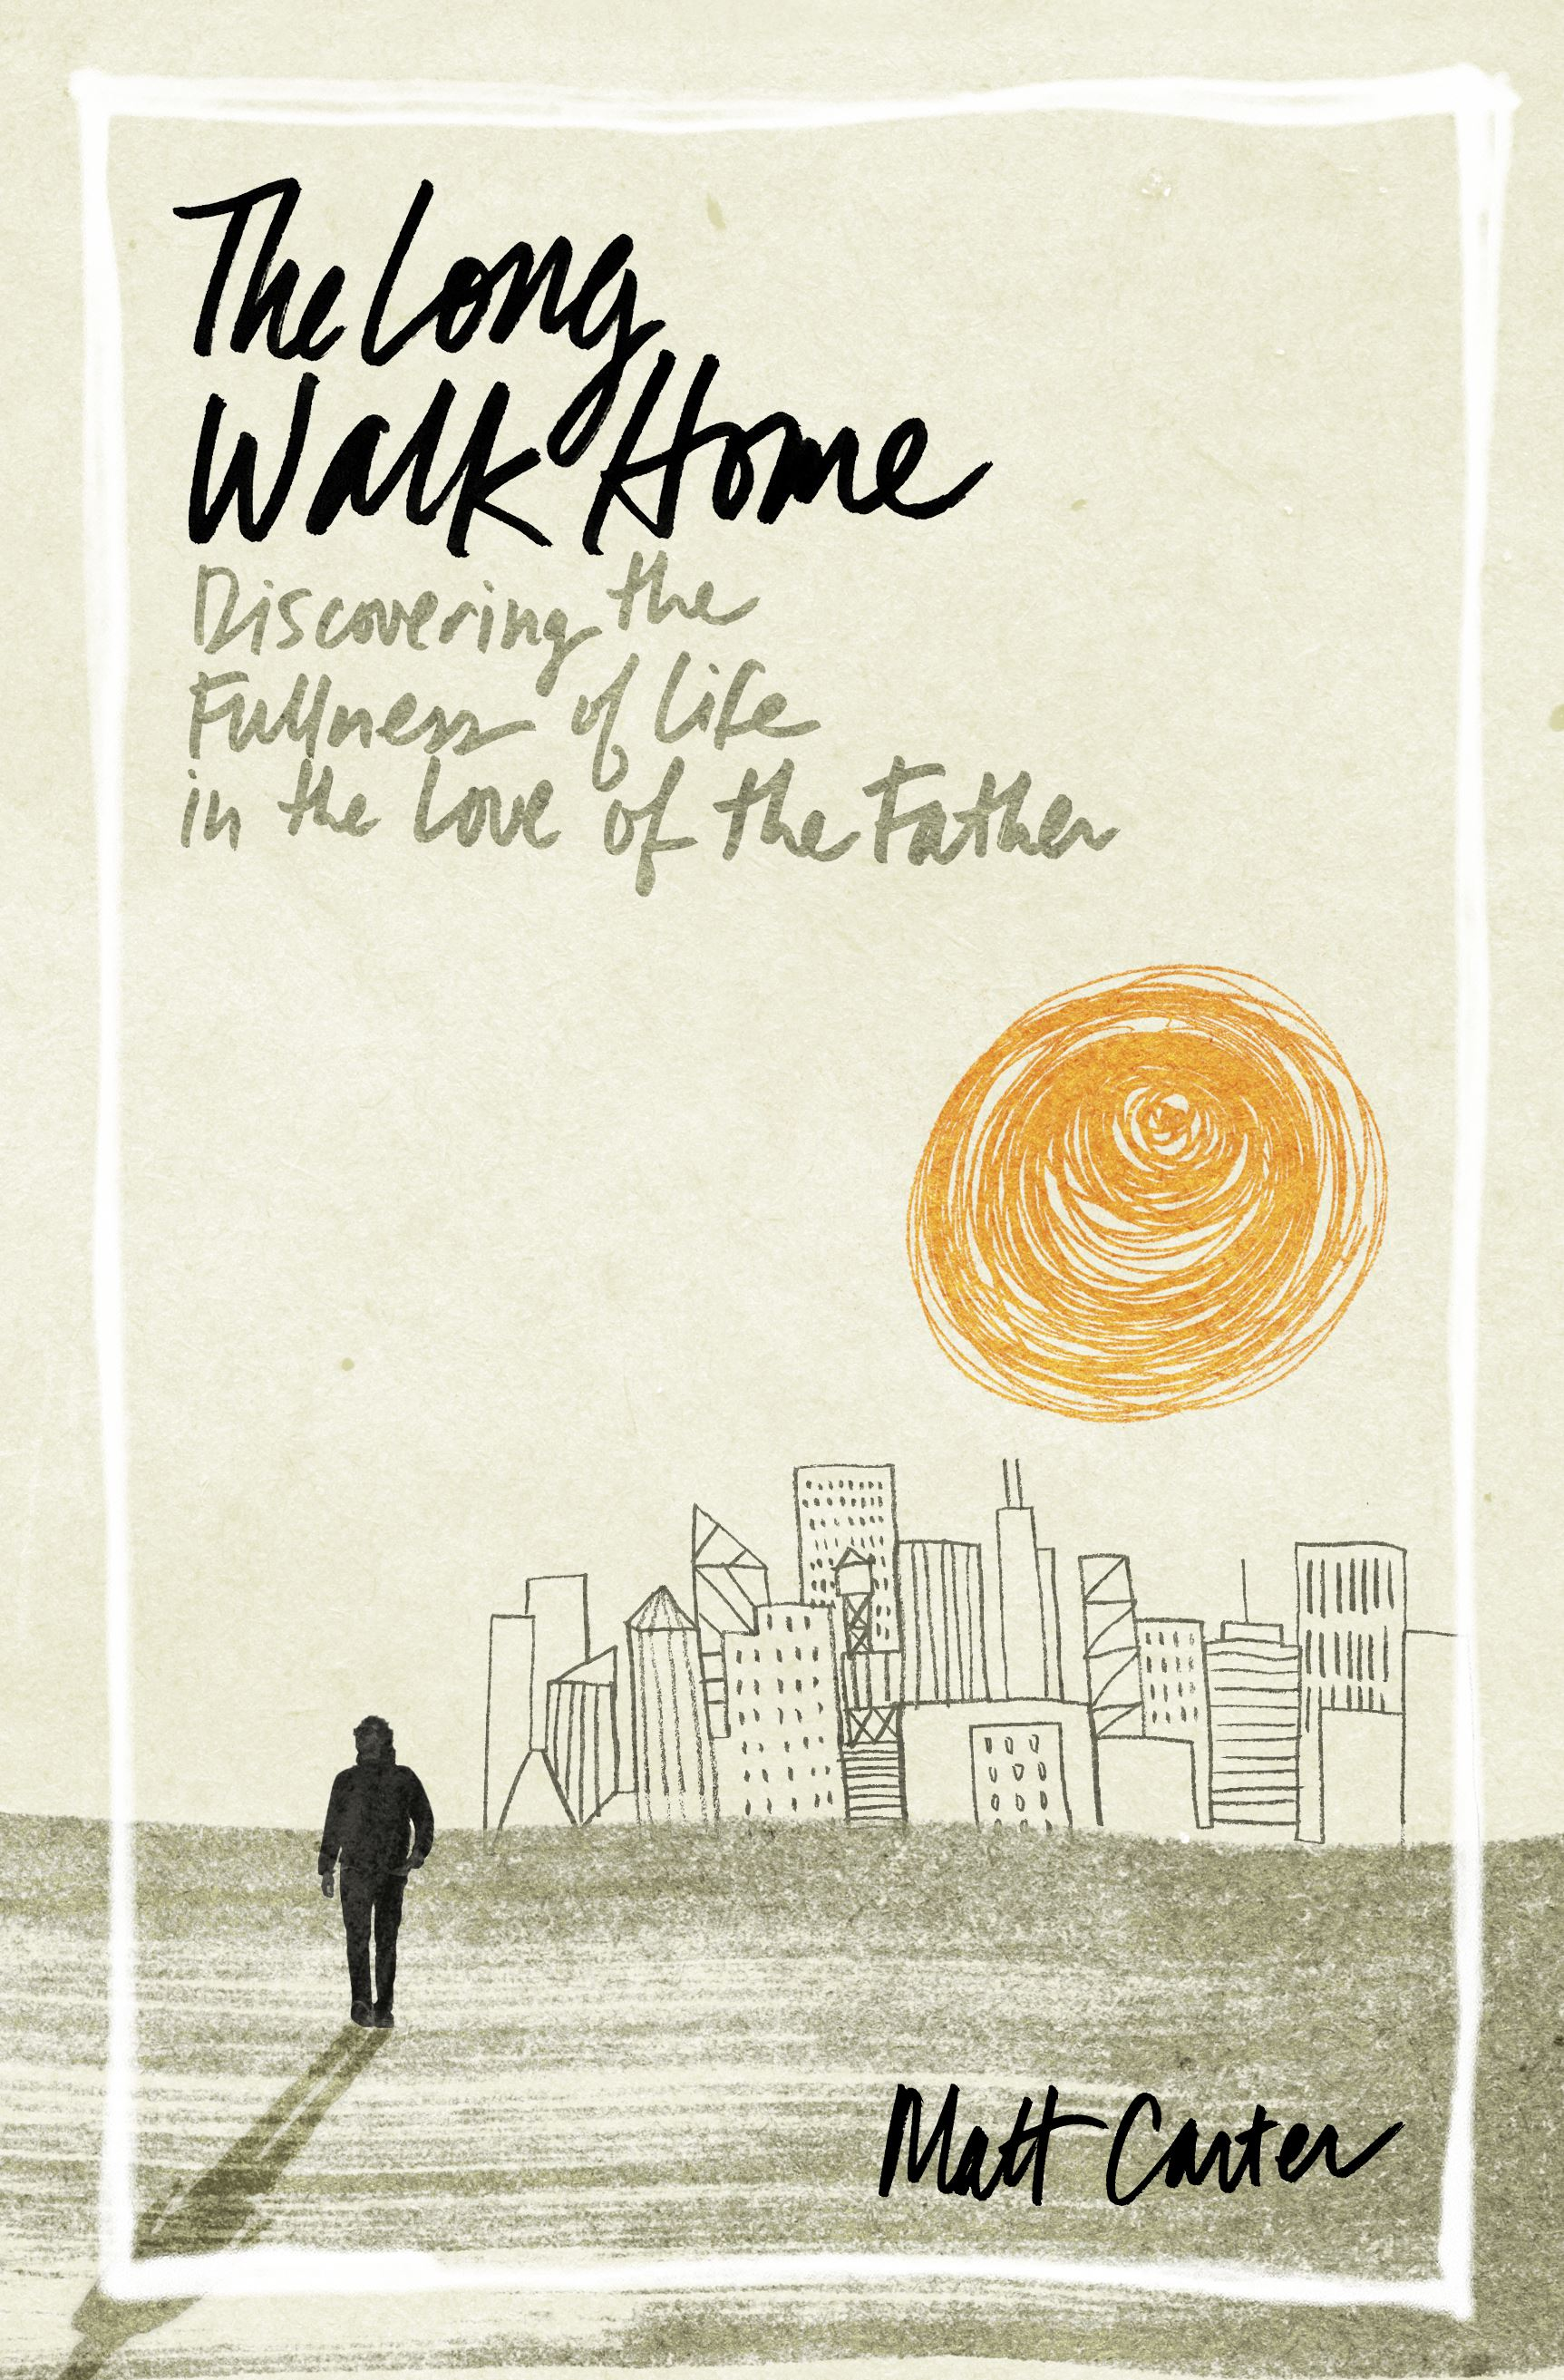 cover of the book The Long Walk Home by Matt Carter